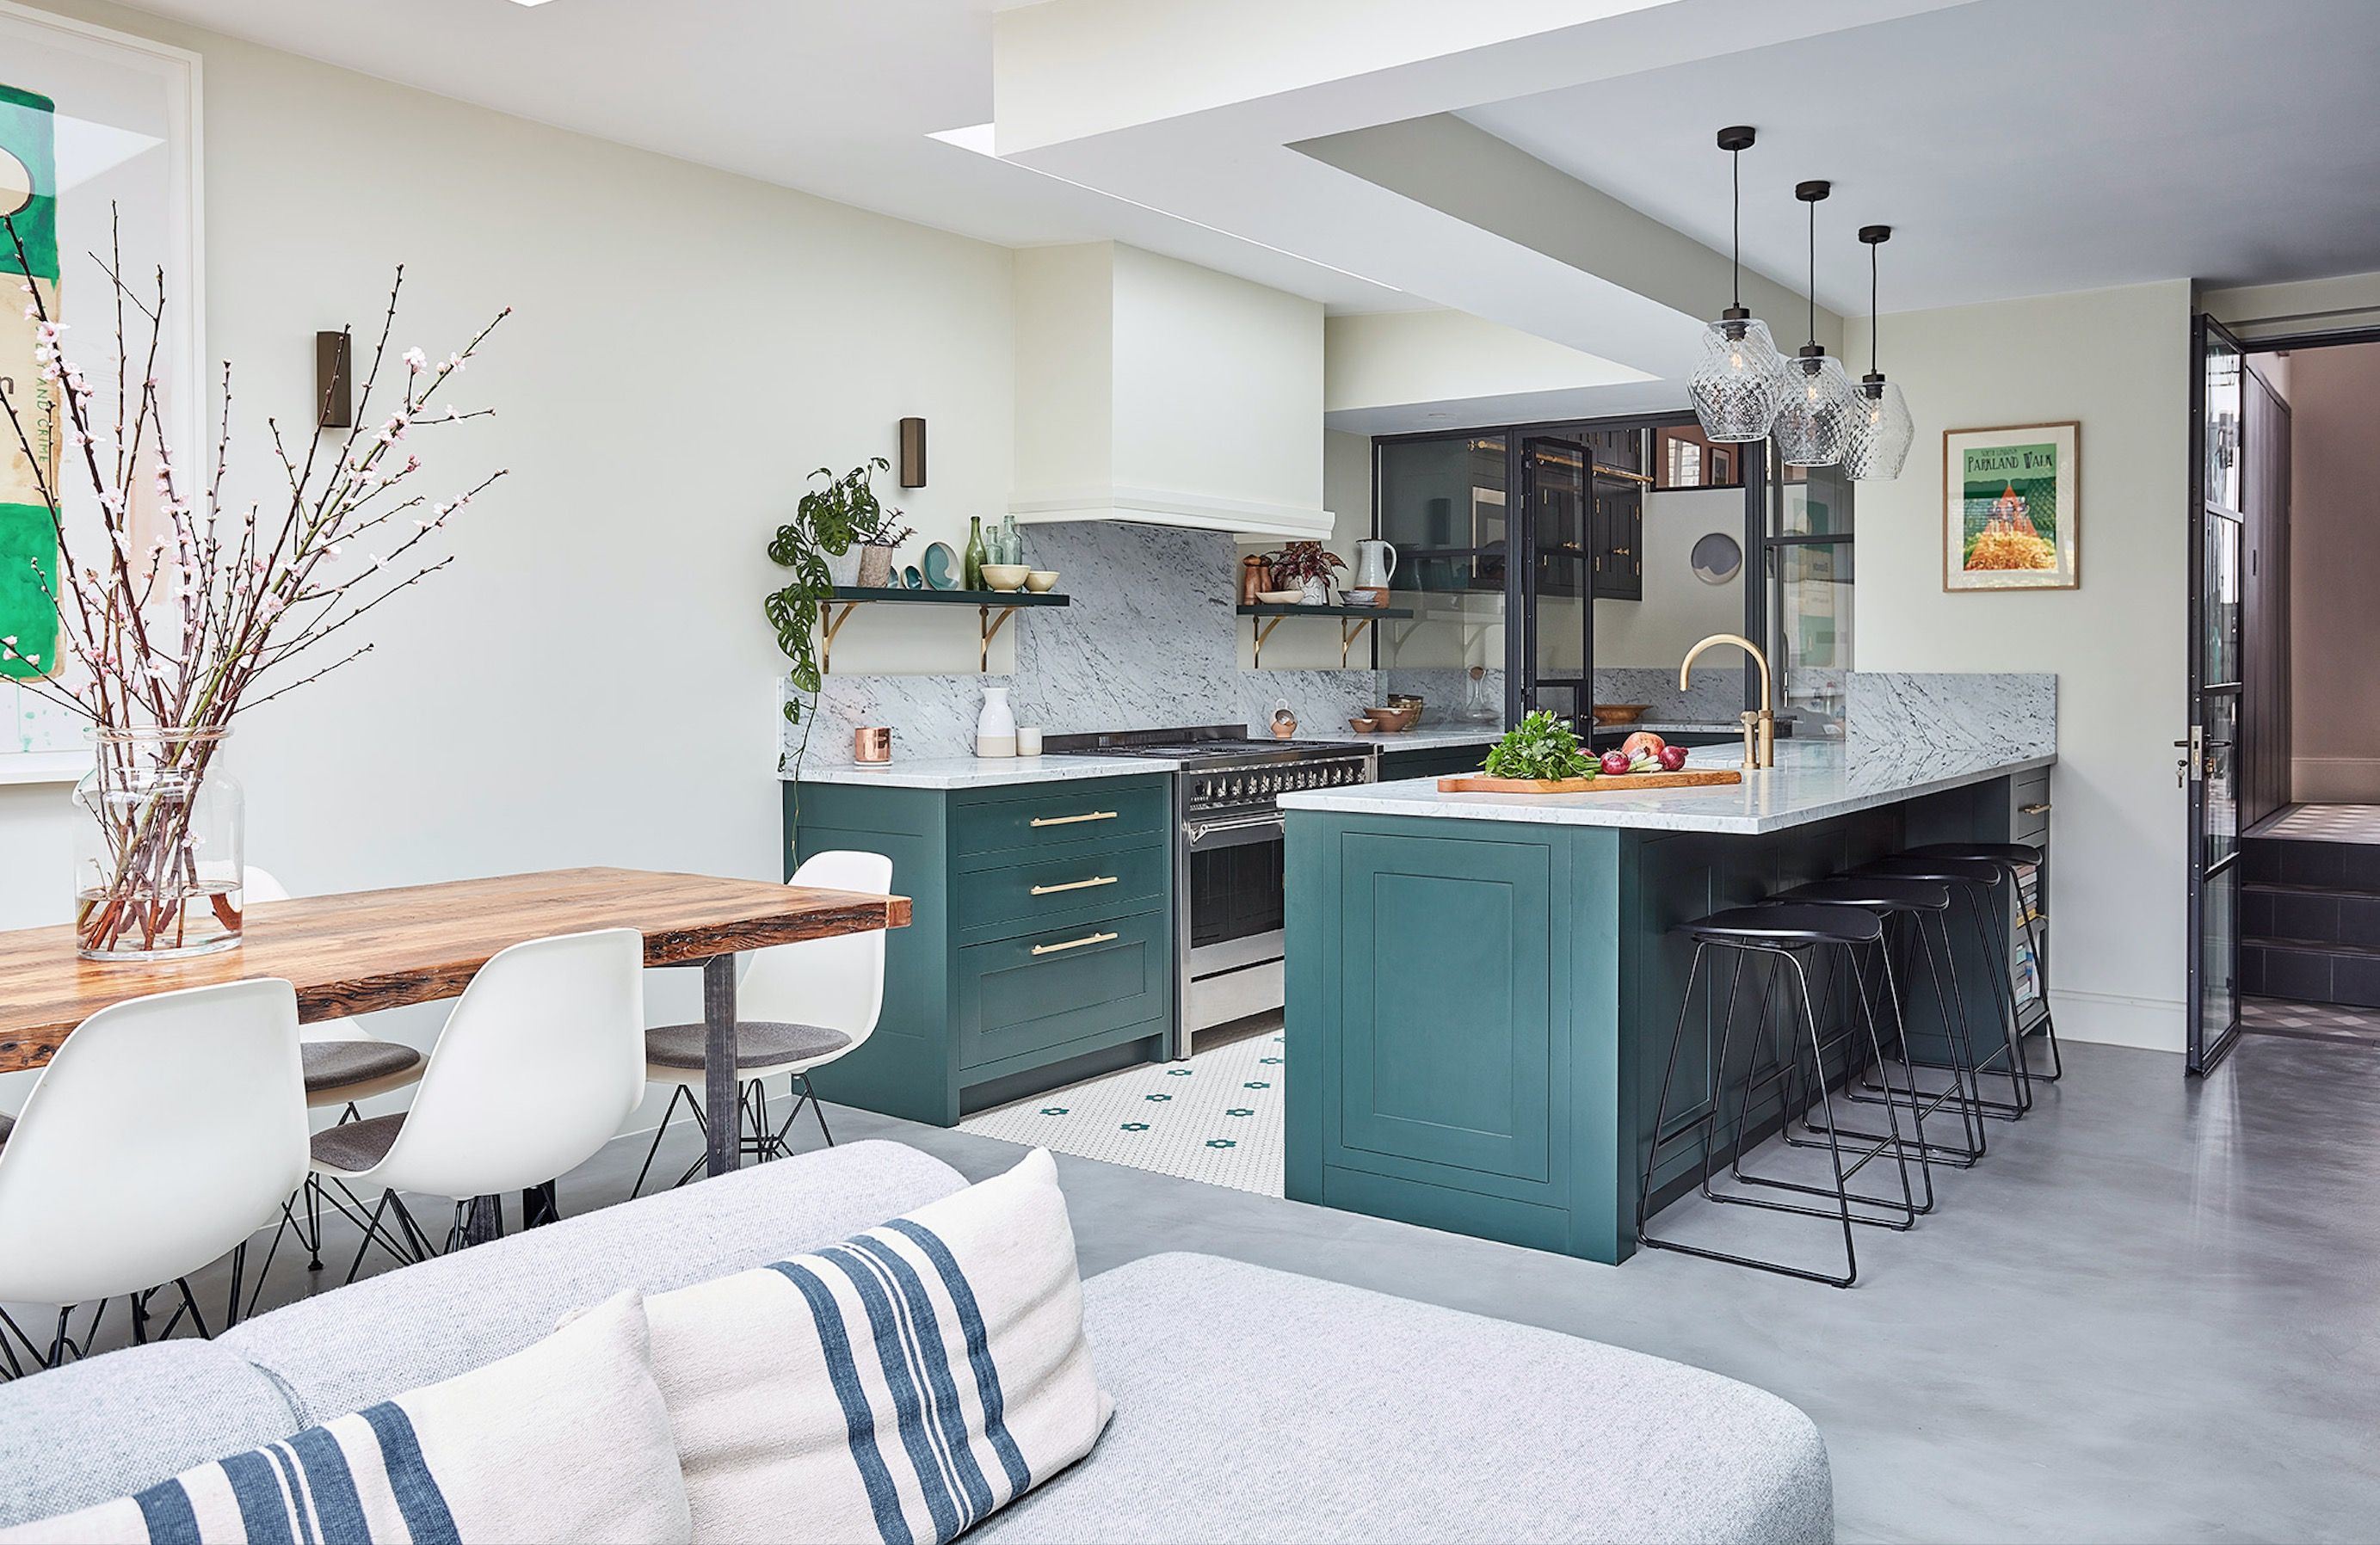 Design Trends to Try in Your Kitchen